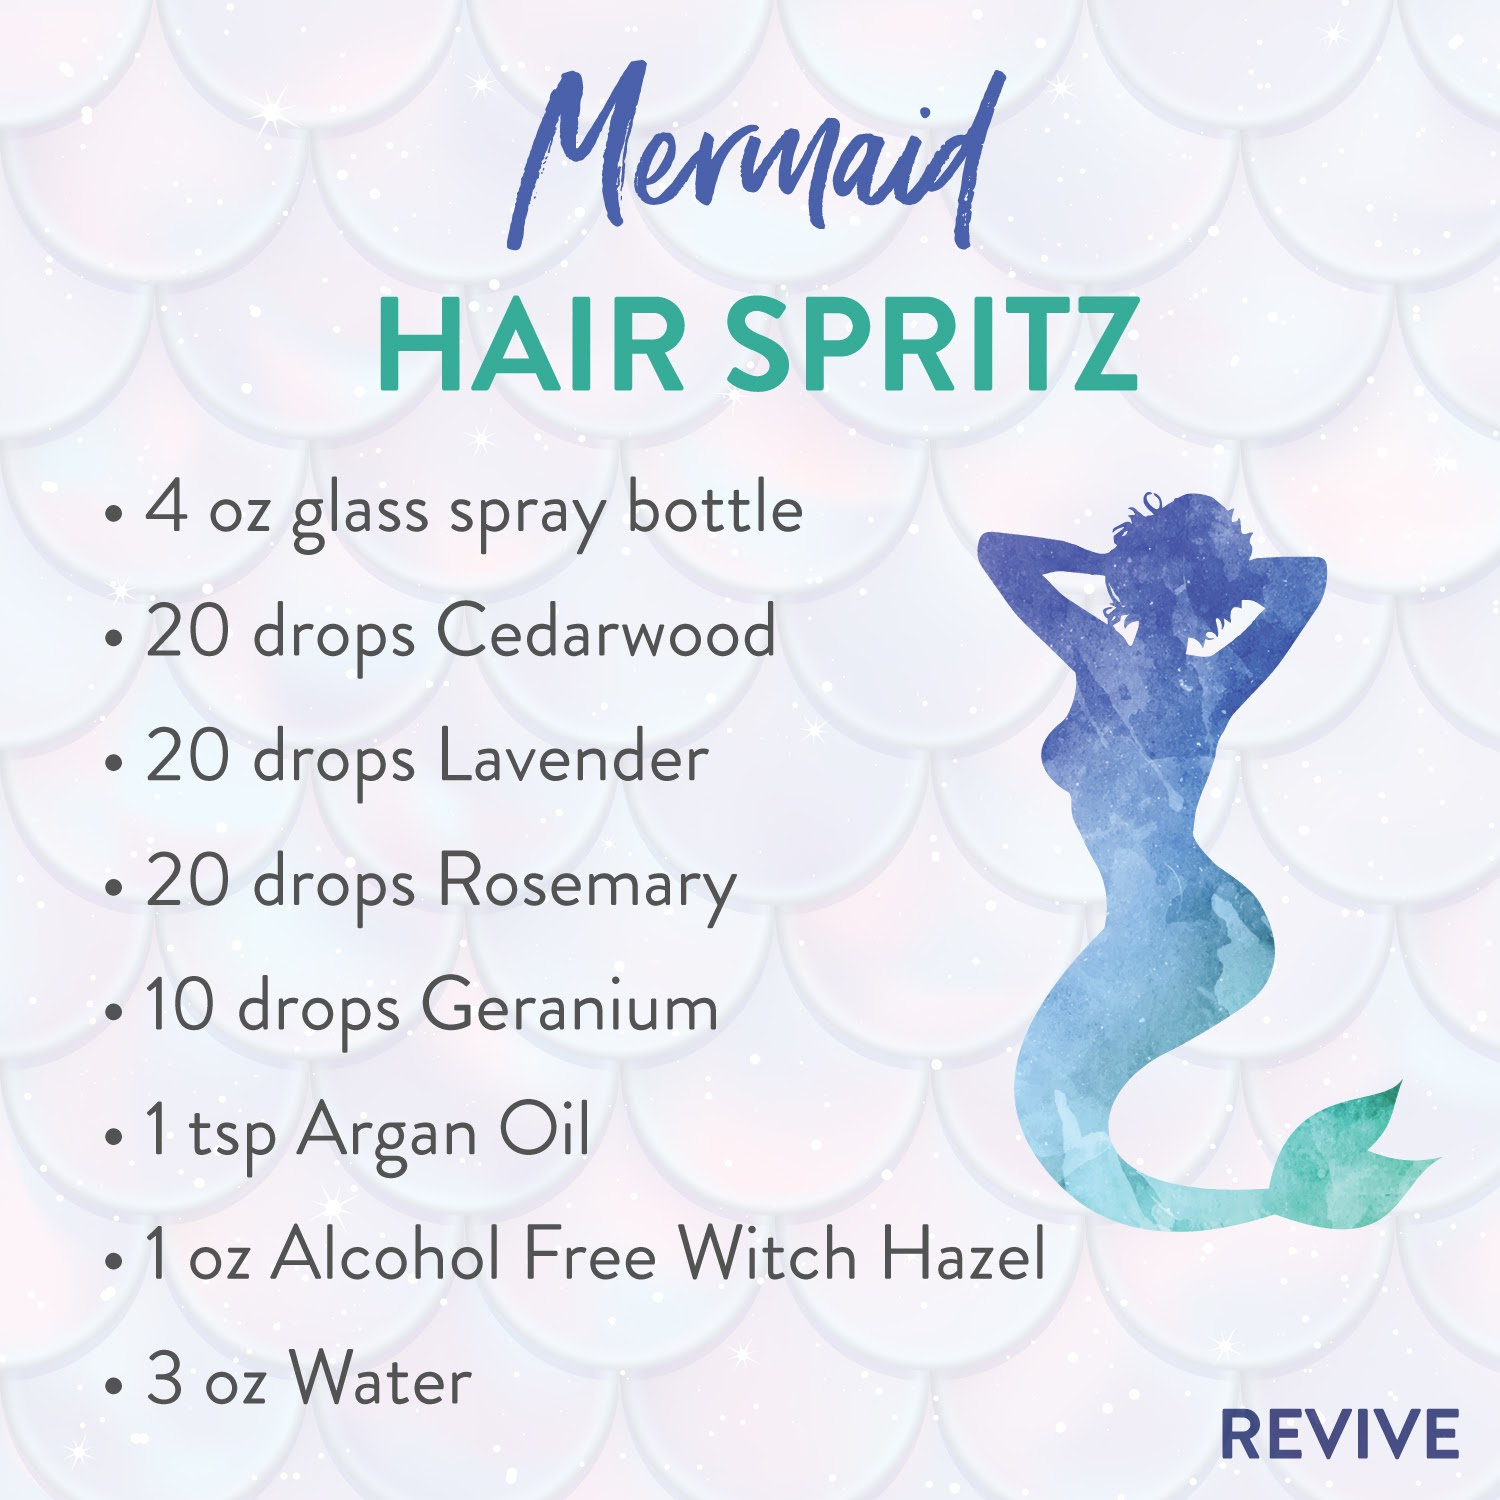 Mermaid Hair Spritz with Essential Oils